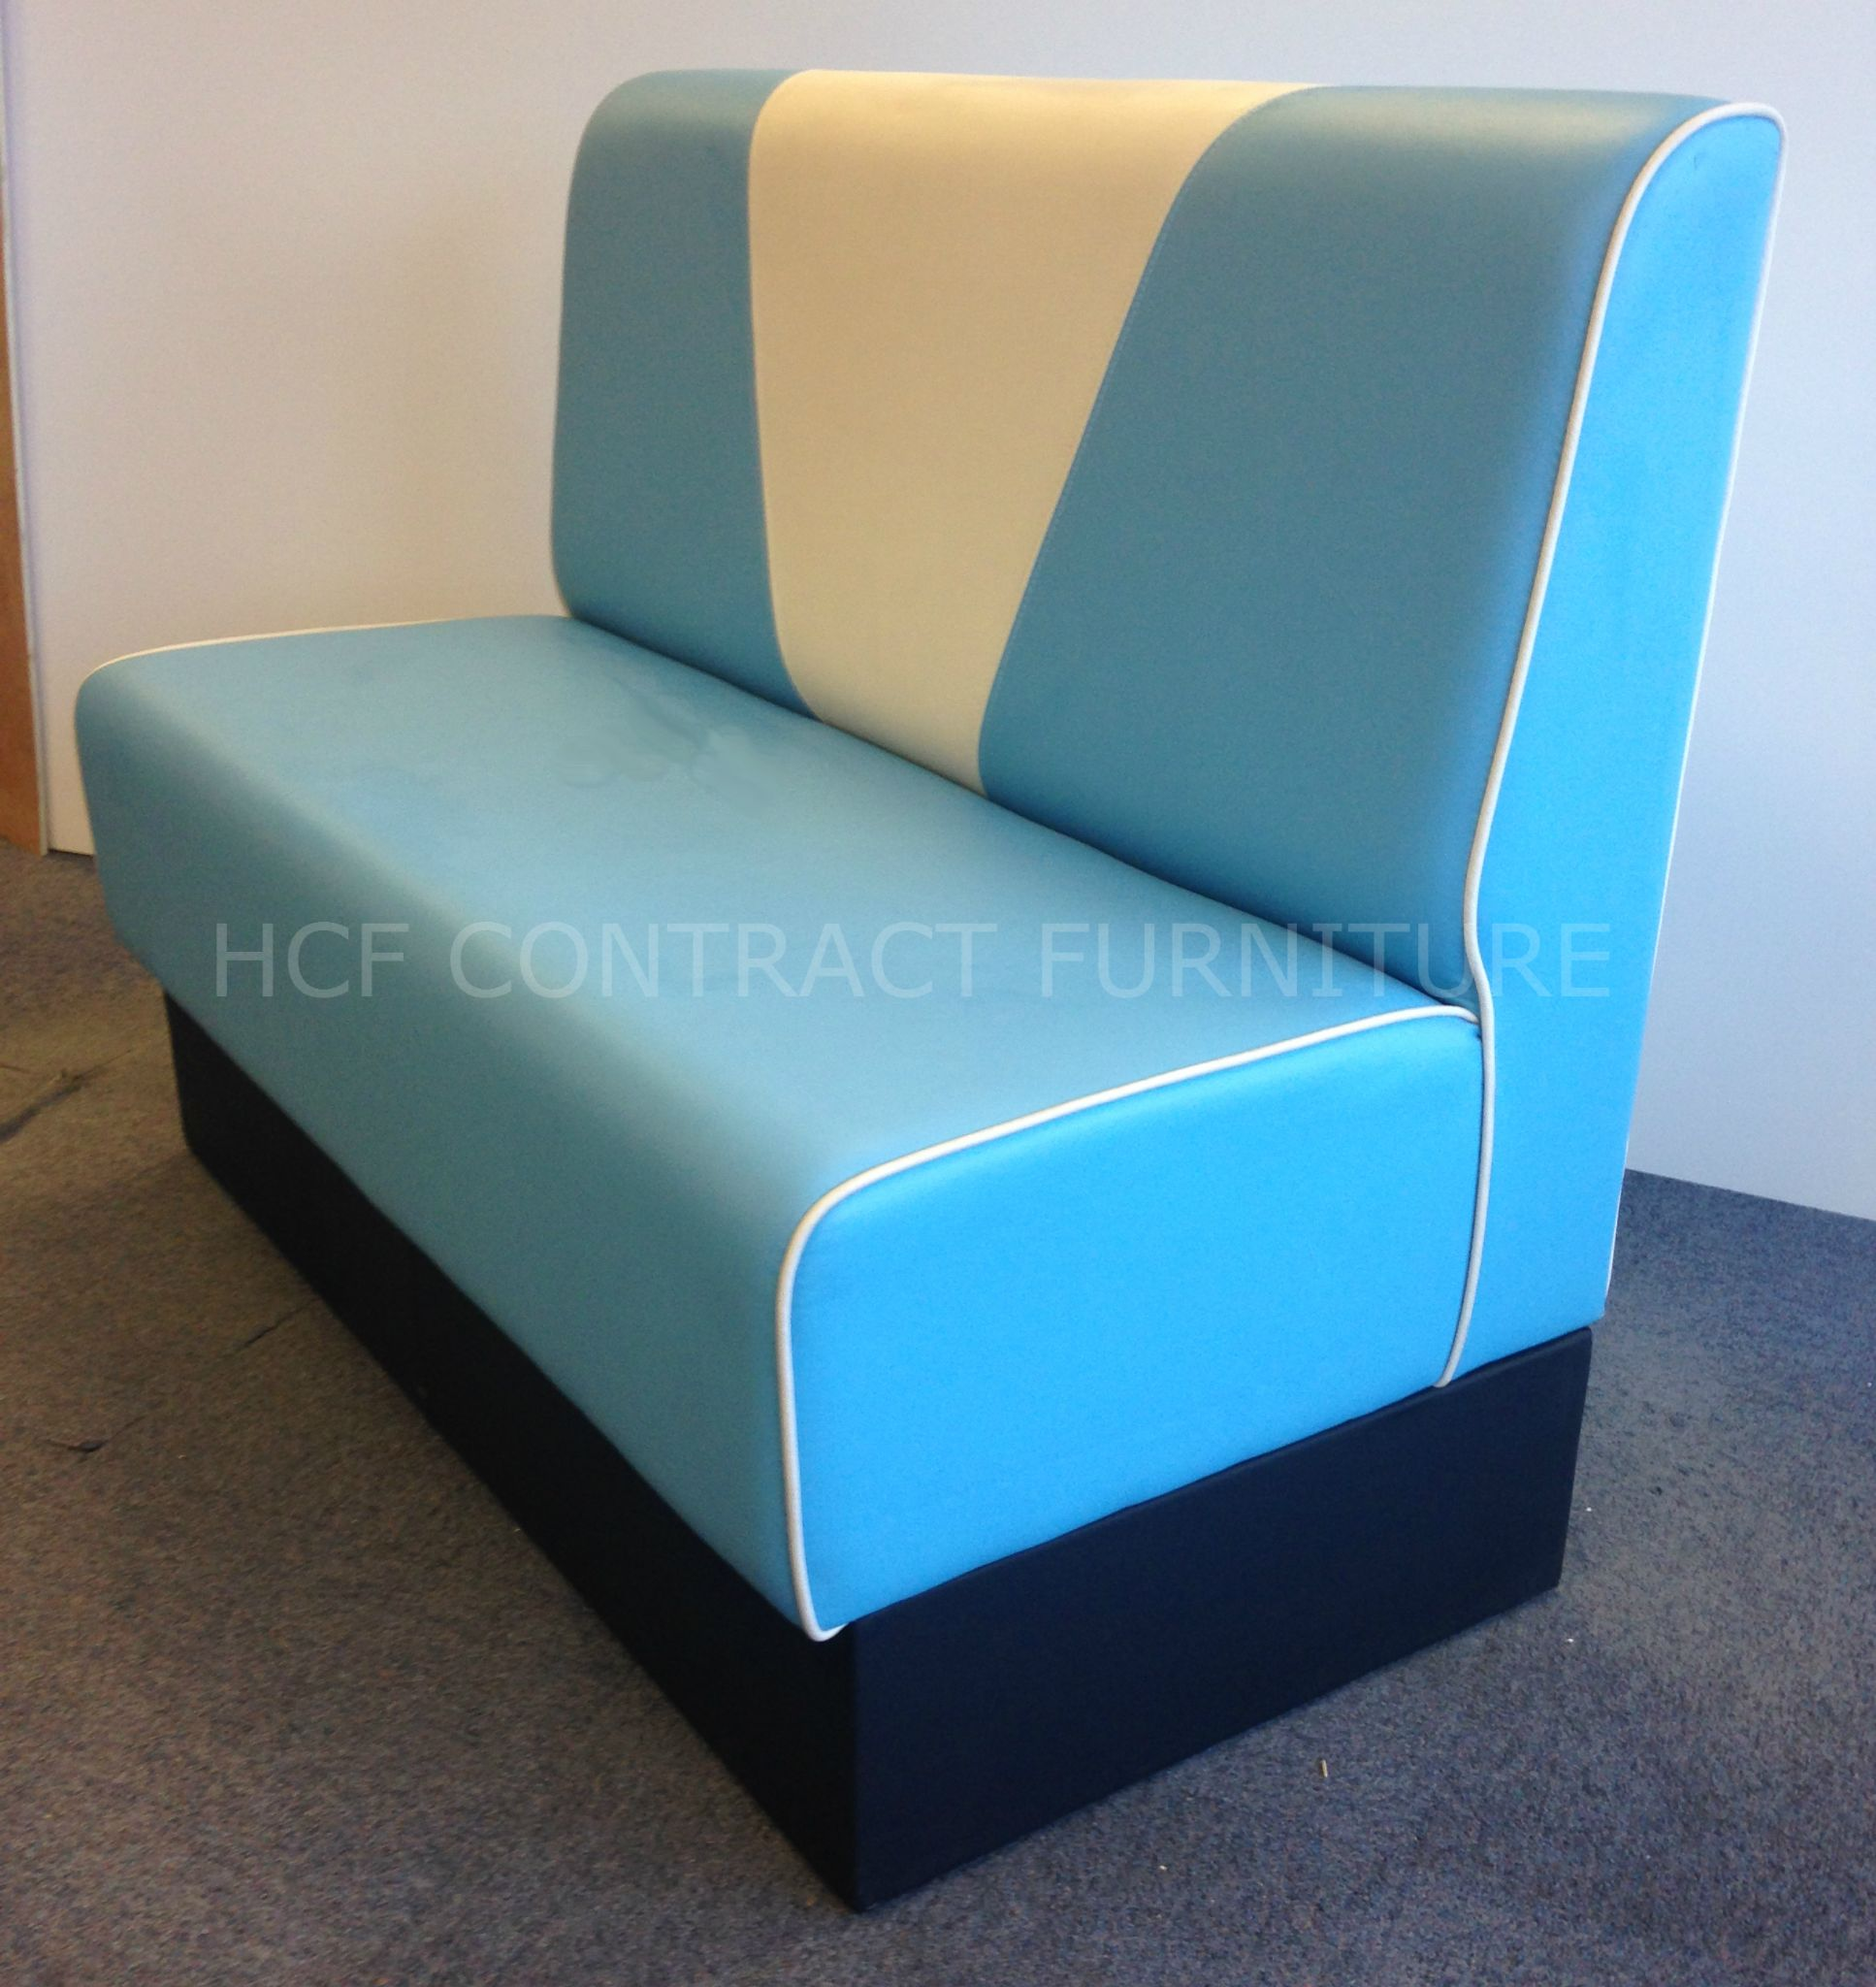 Seat Weiß 2 Seater Retro V Back Booth Seat 1200mm Upholstered In Aqua Weiss